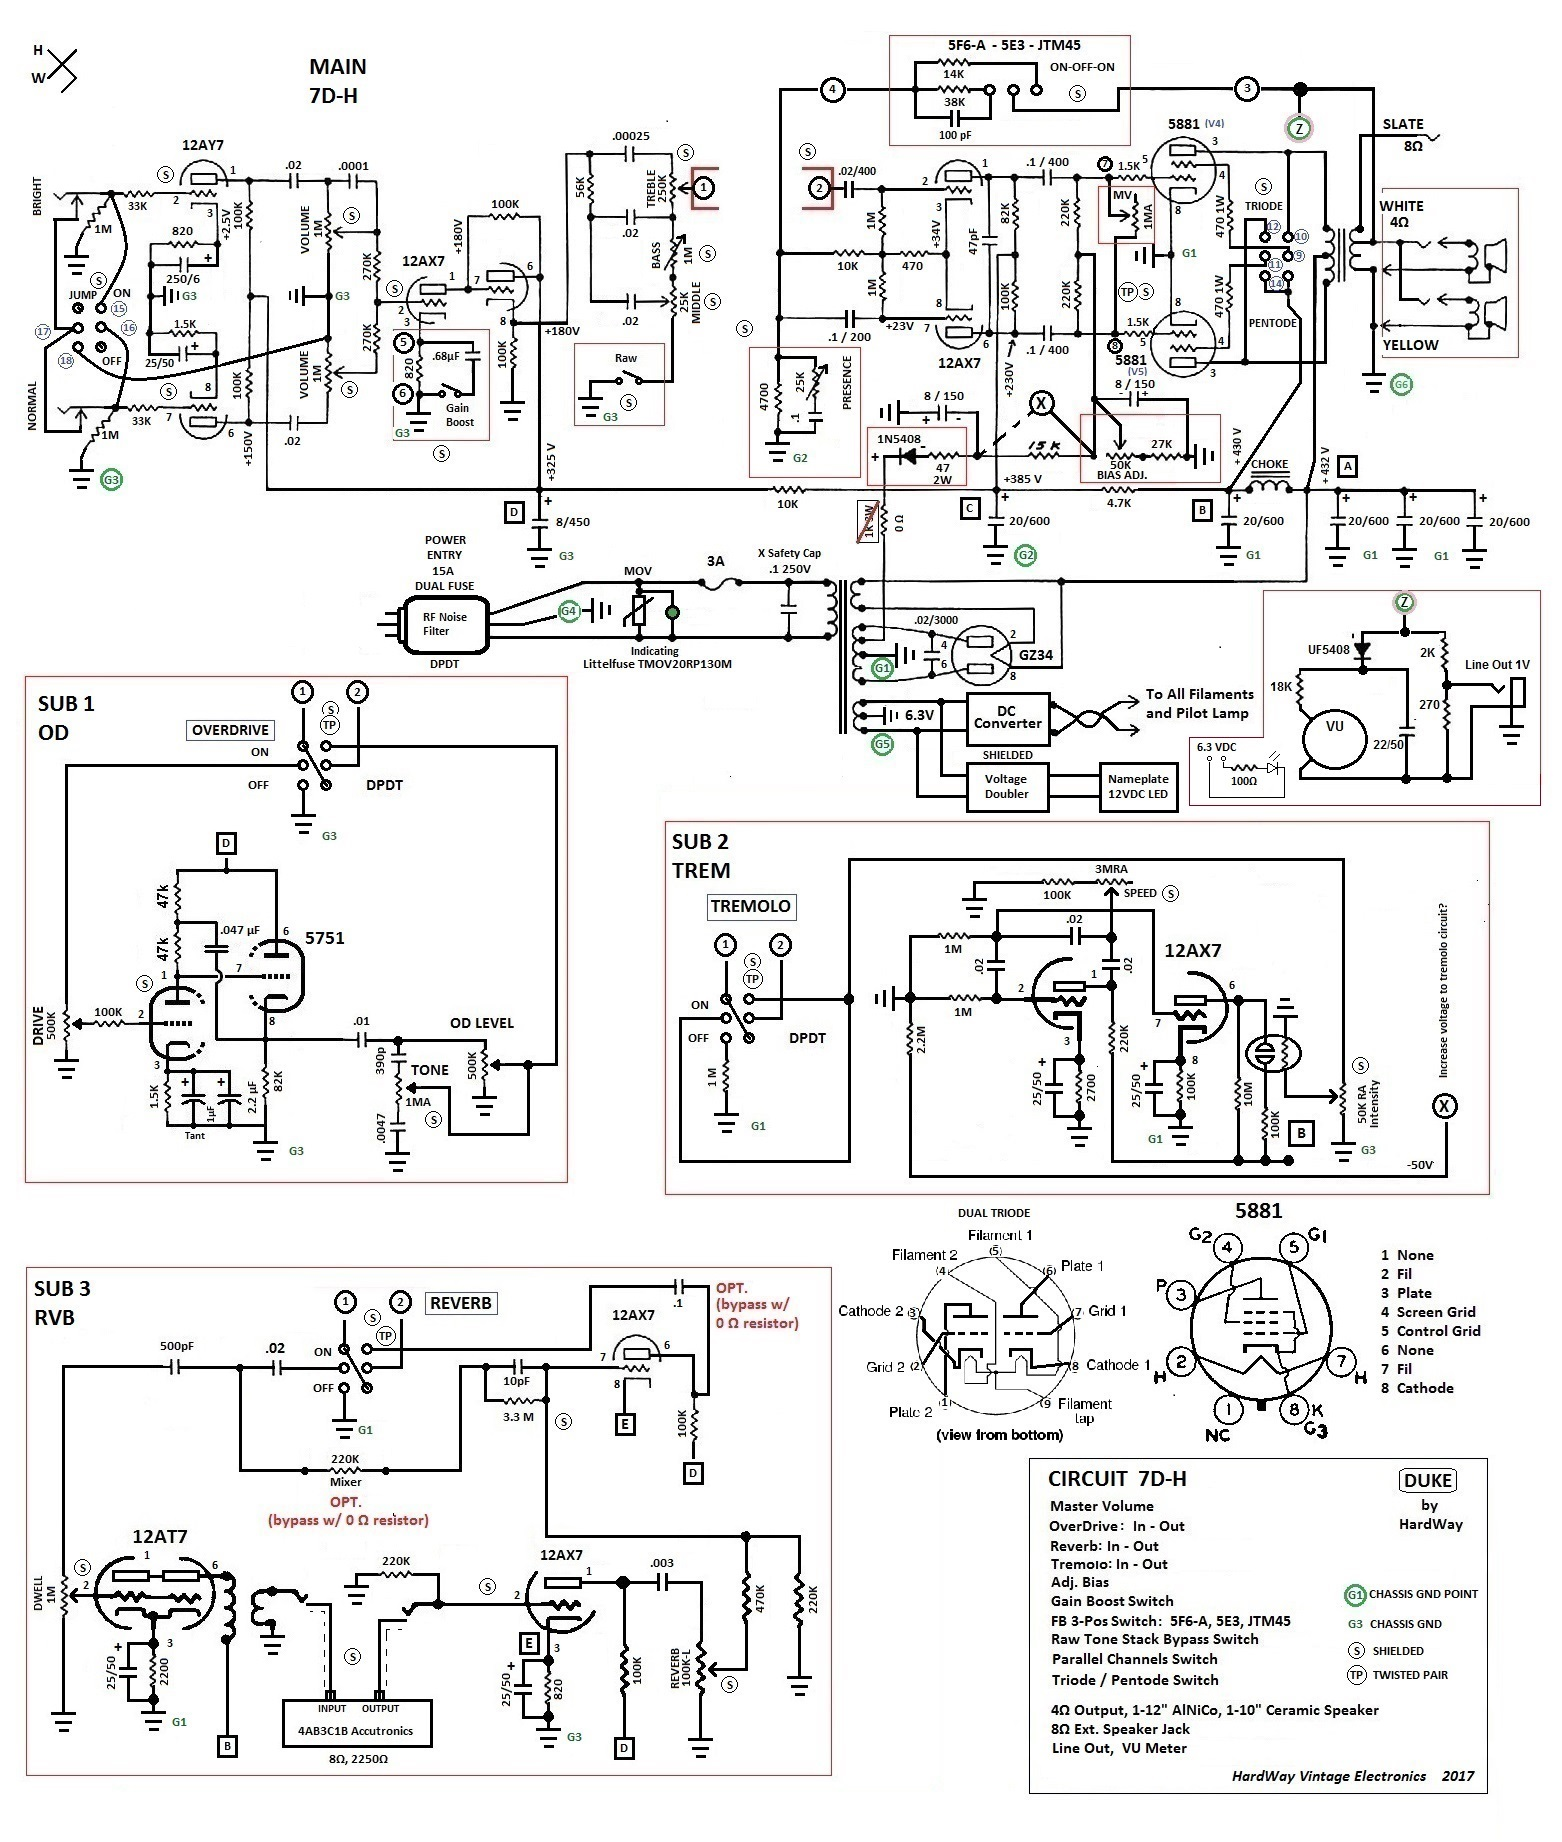 """7D-H """"Duke"""" Schematic, with Sub-Circuits"""